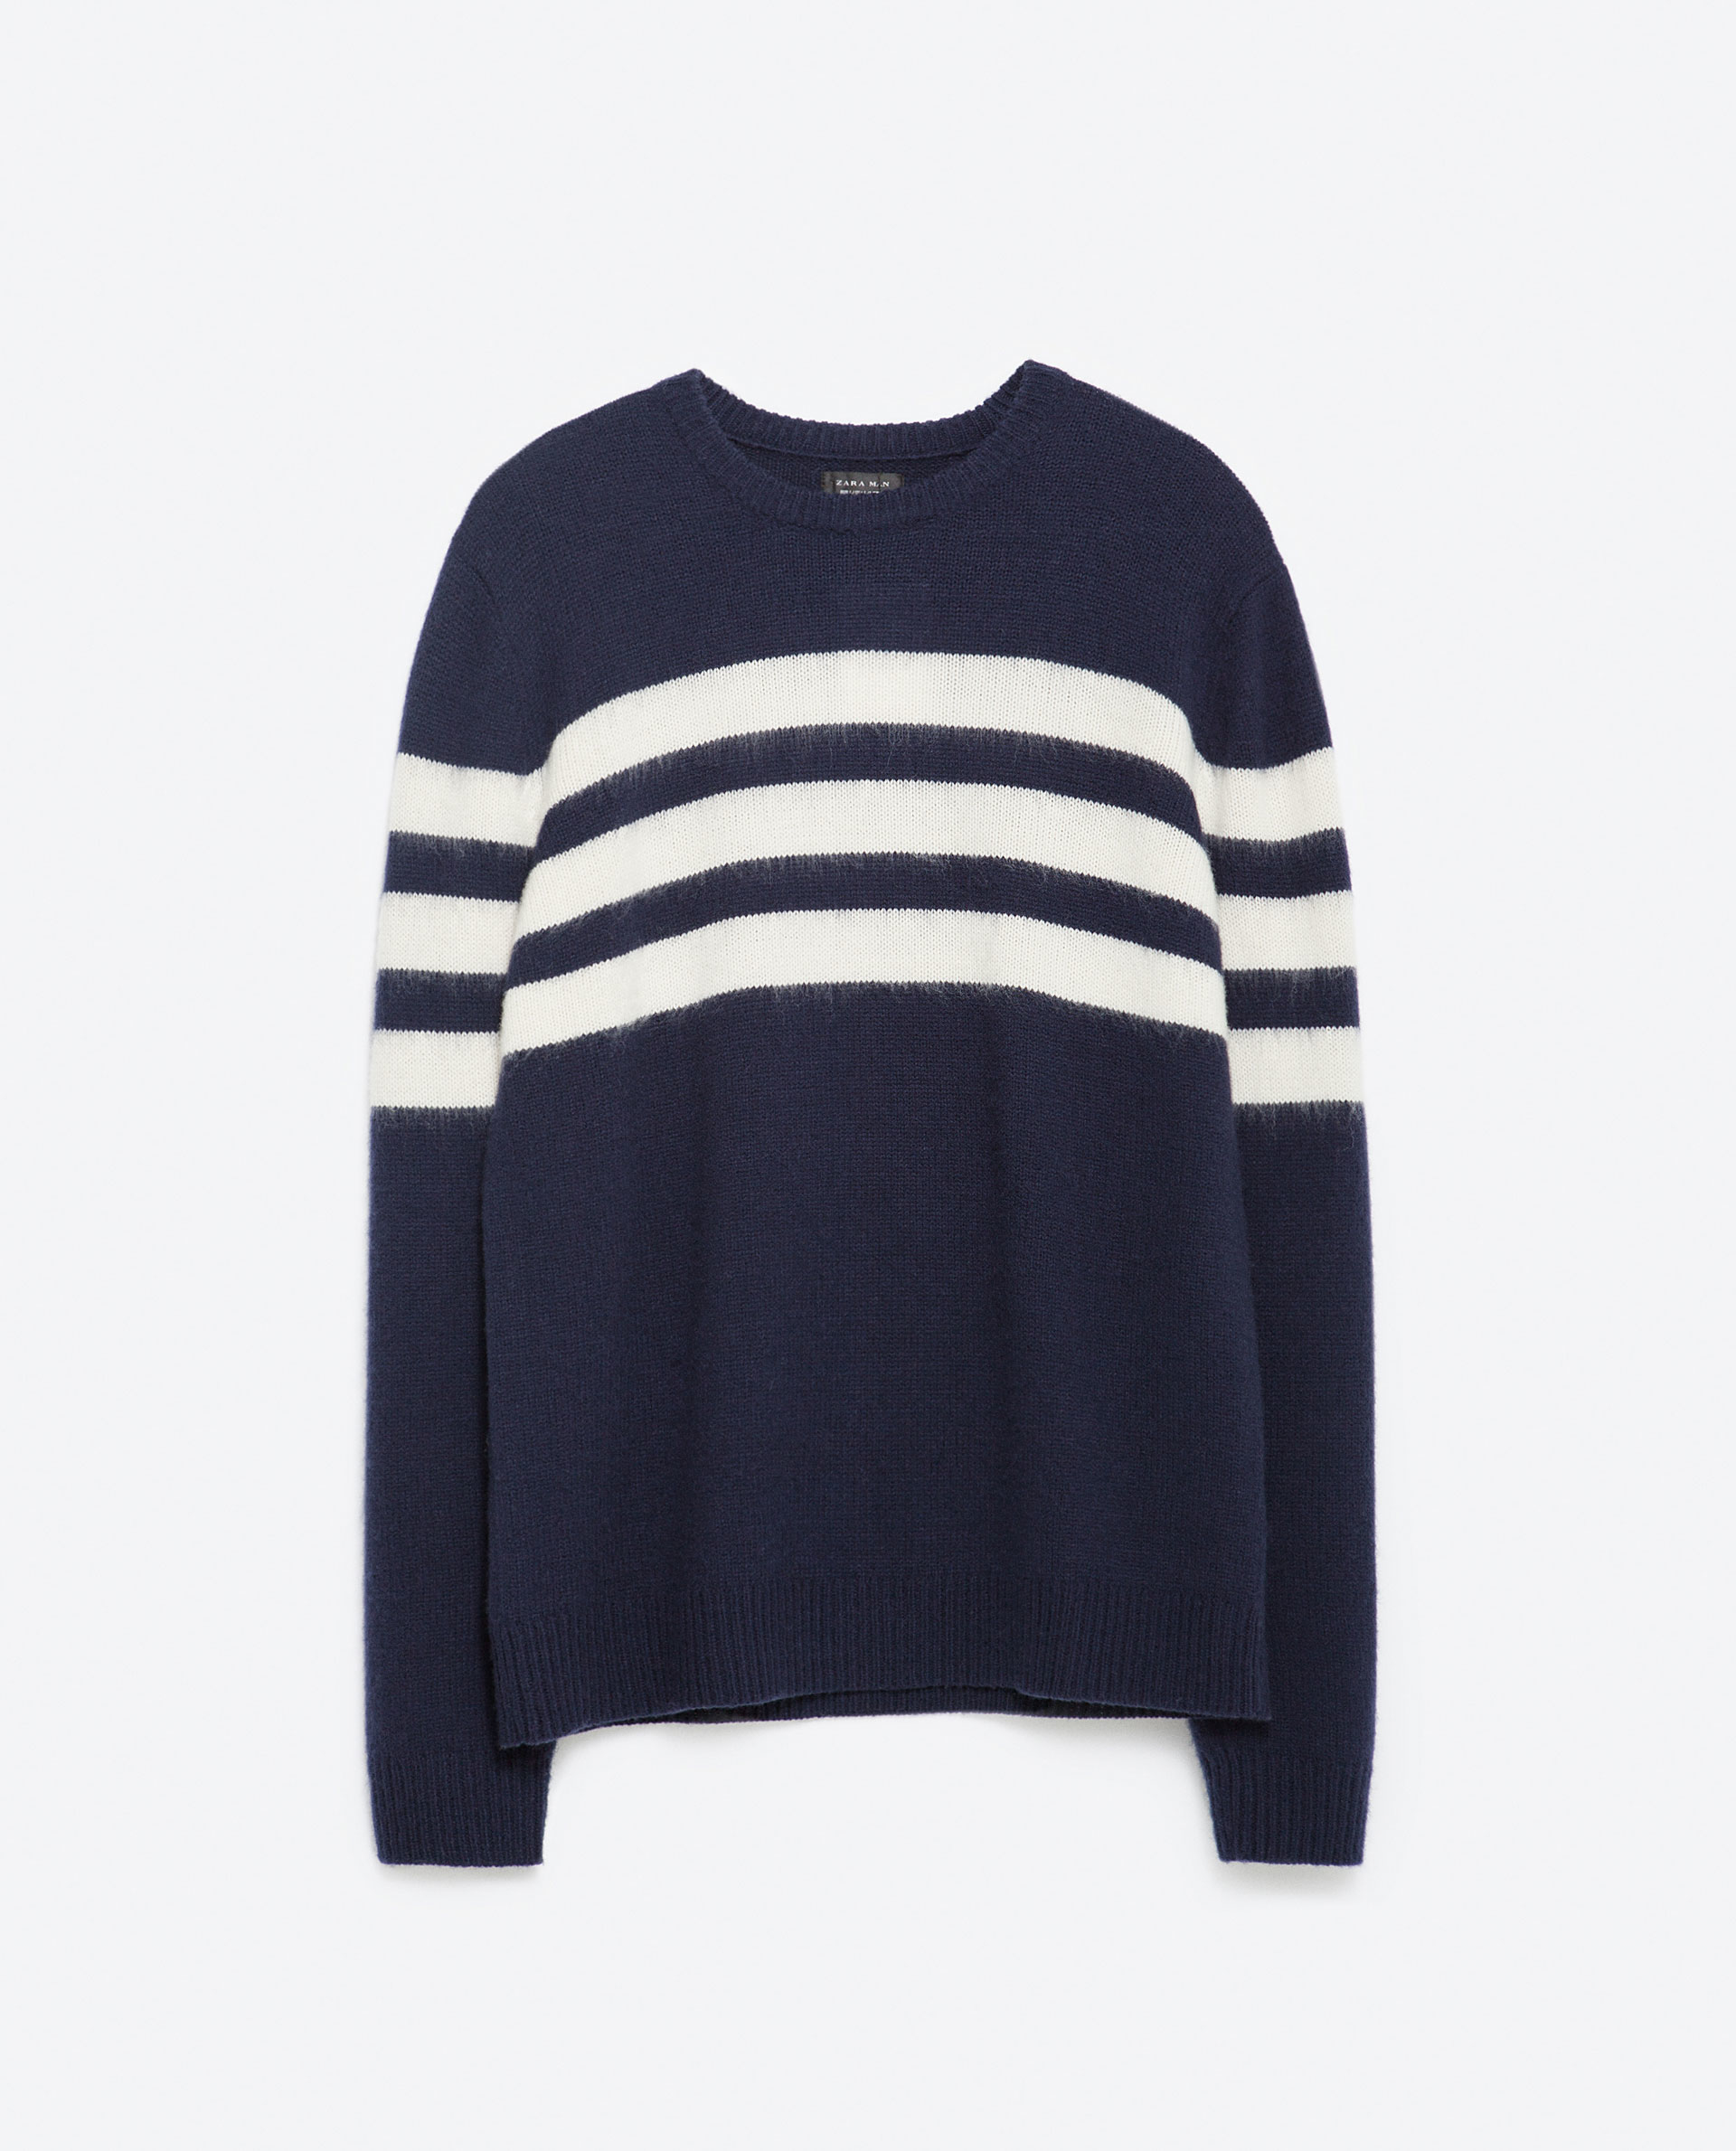 Shop for women navy white stripe top at trueufilv3f.ga Free Shipping. Free Returns. All the time.